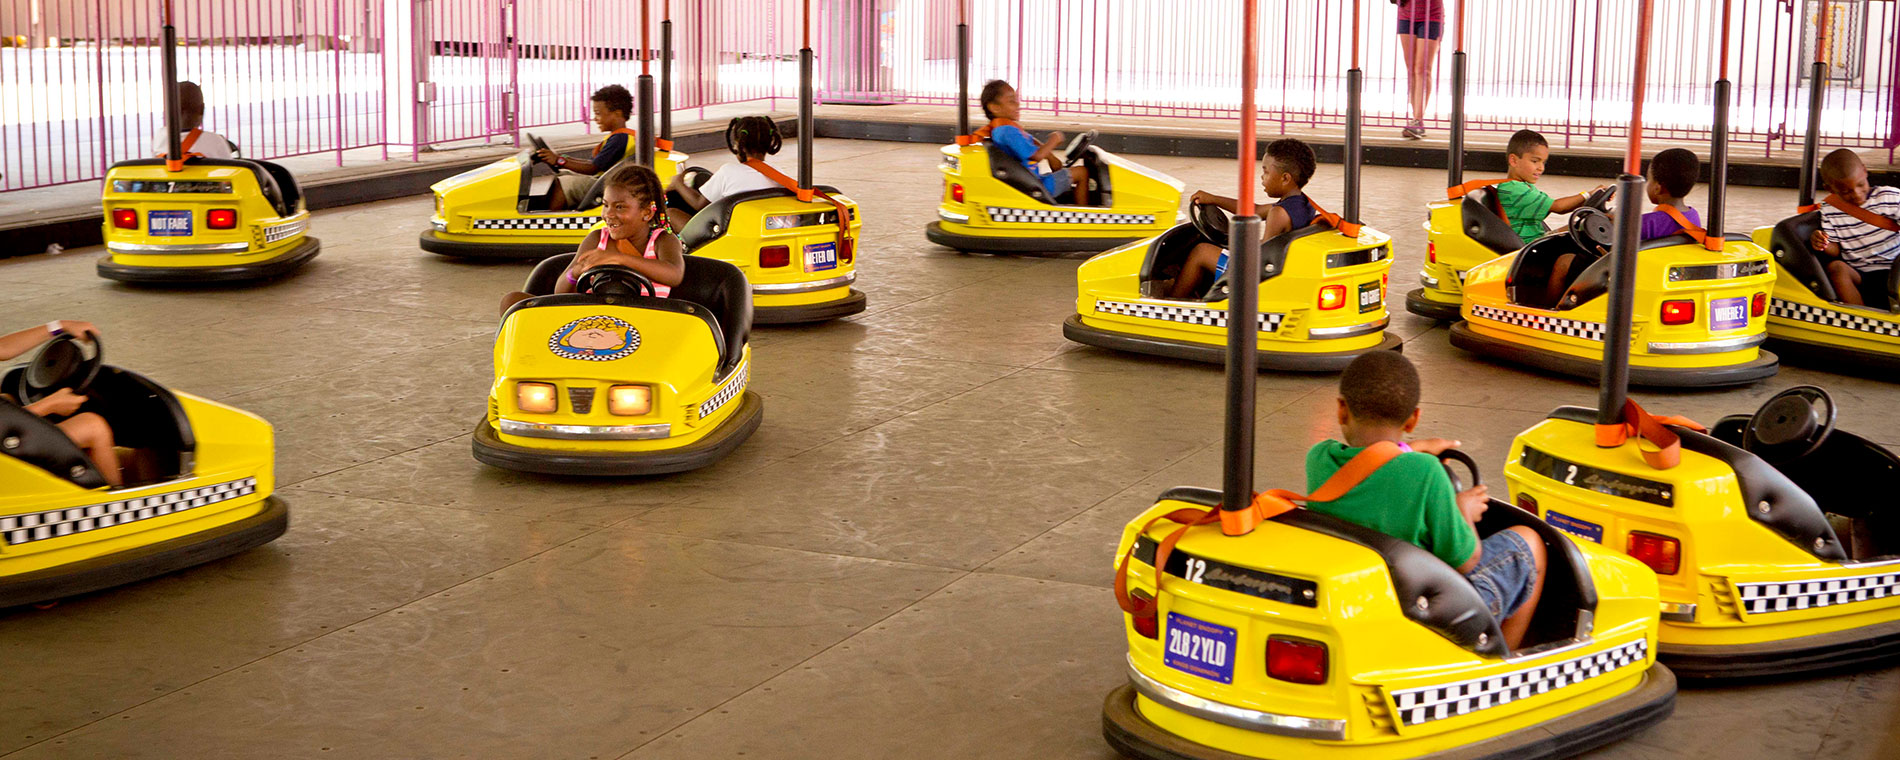 Joe Cool's Dodgem School Kids Bumper Cars Ride at California's Great America